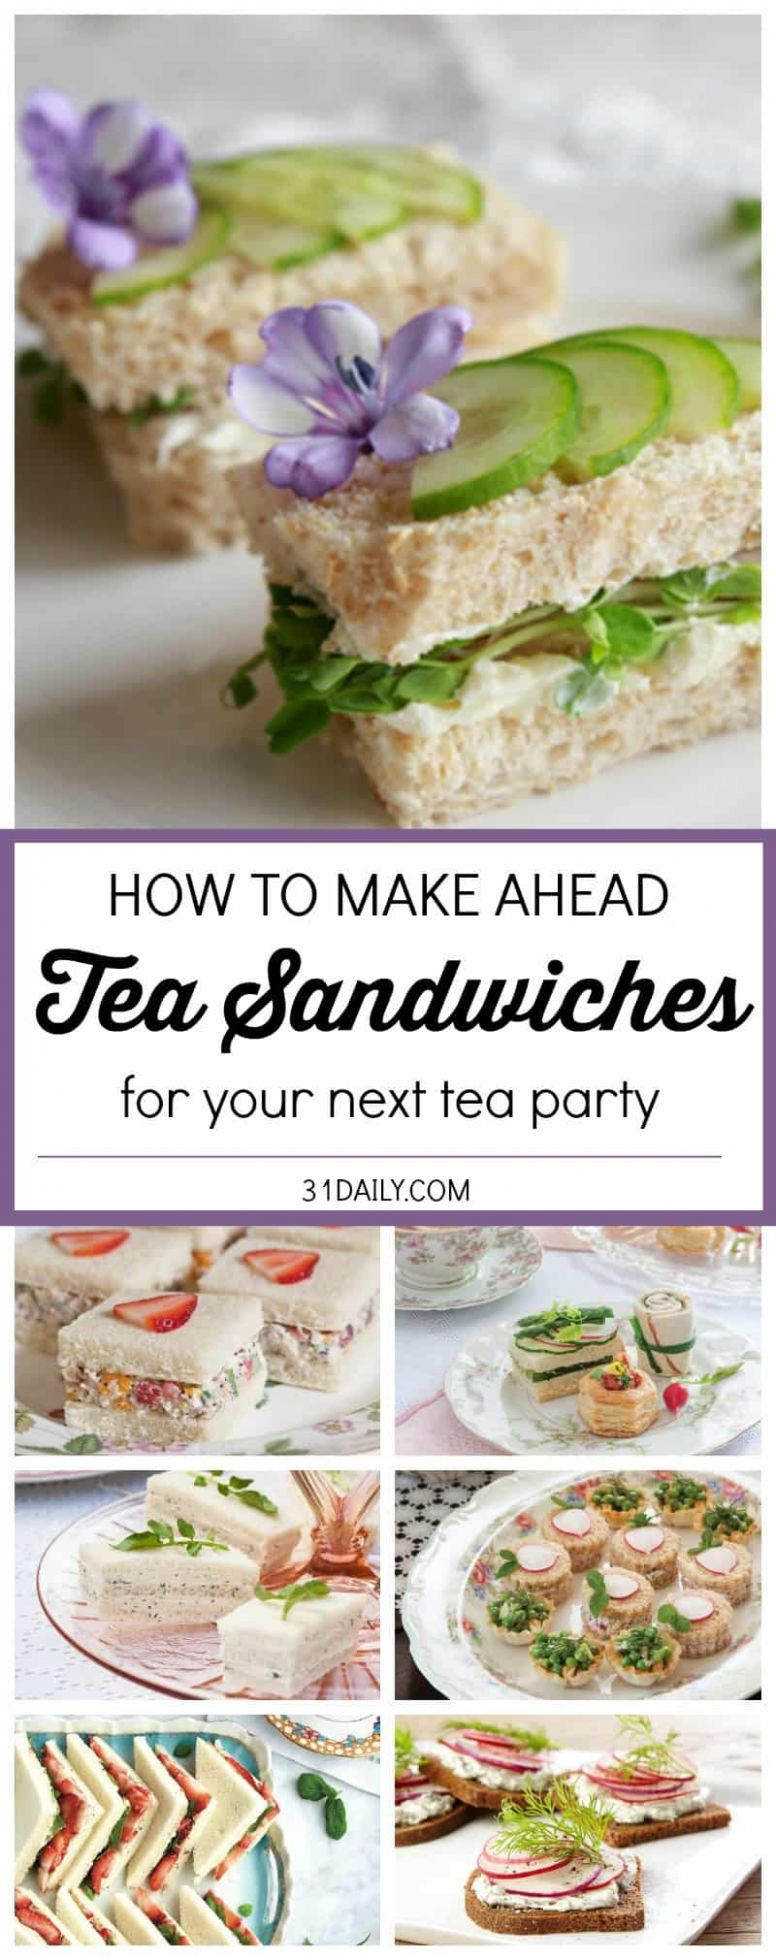 Easy Make Ahead Tea Sandwiches - 11 Daily - Recipes Sandwich Fillings Party